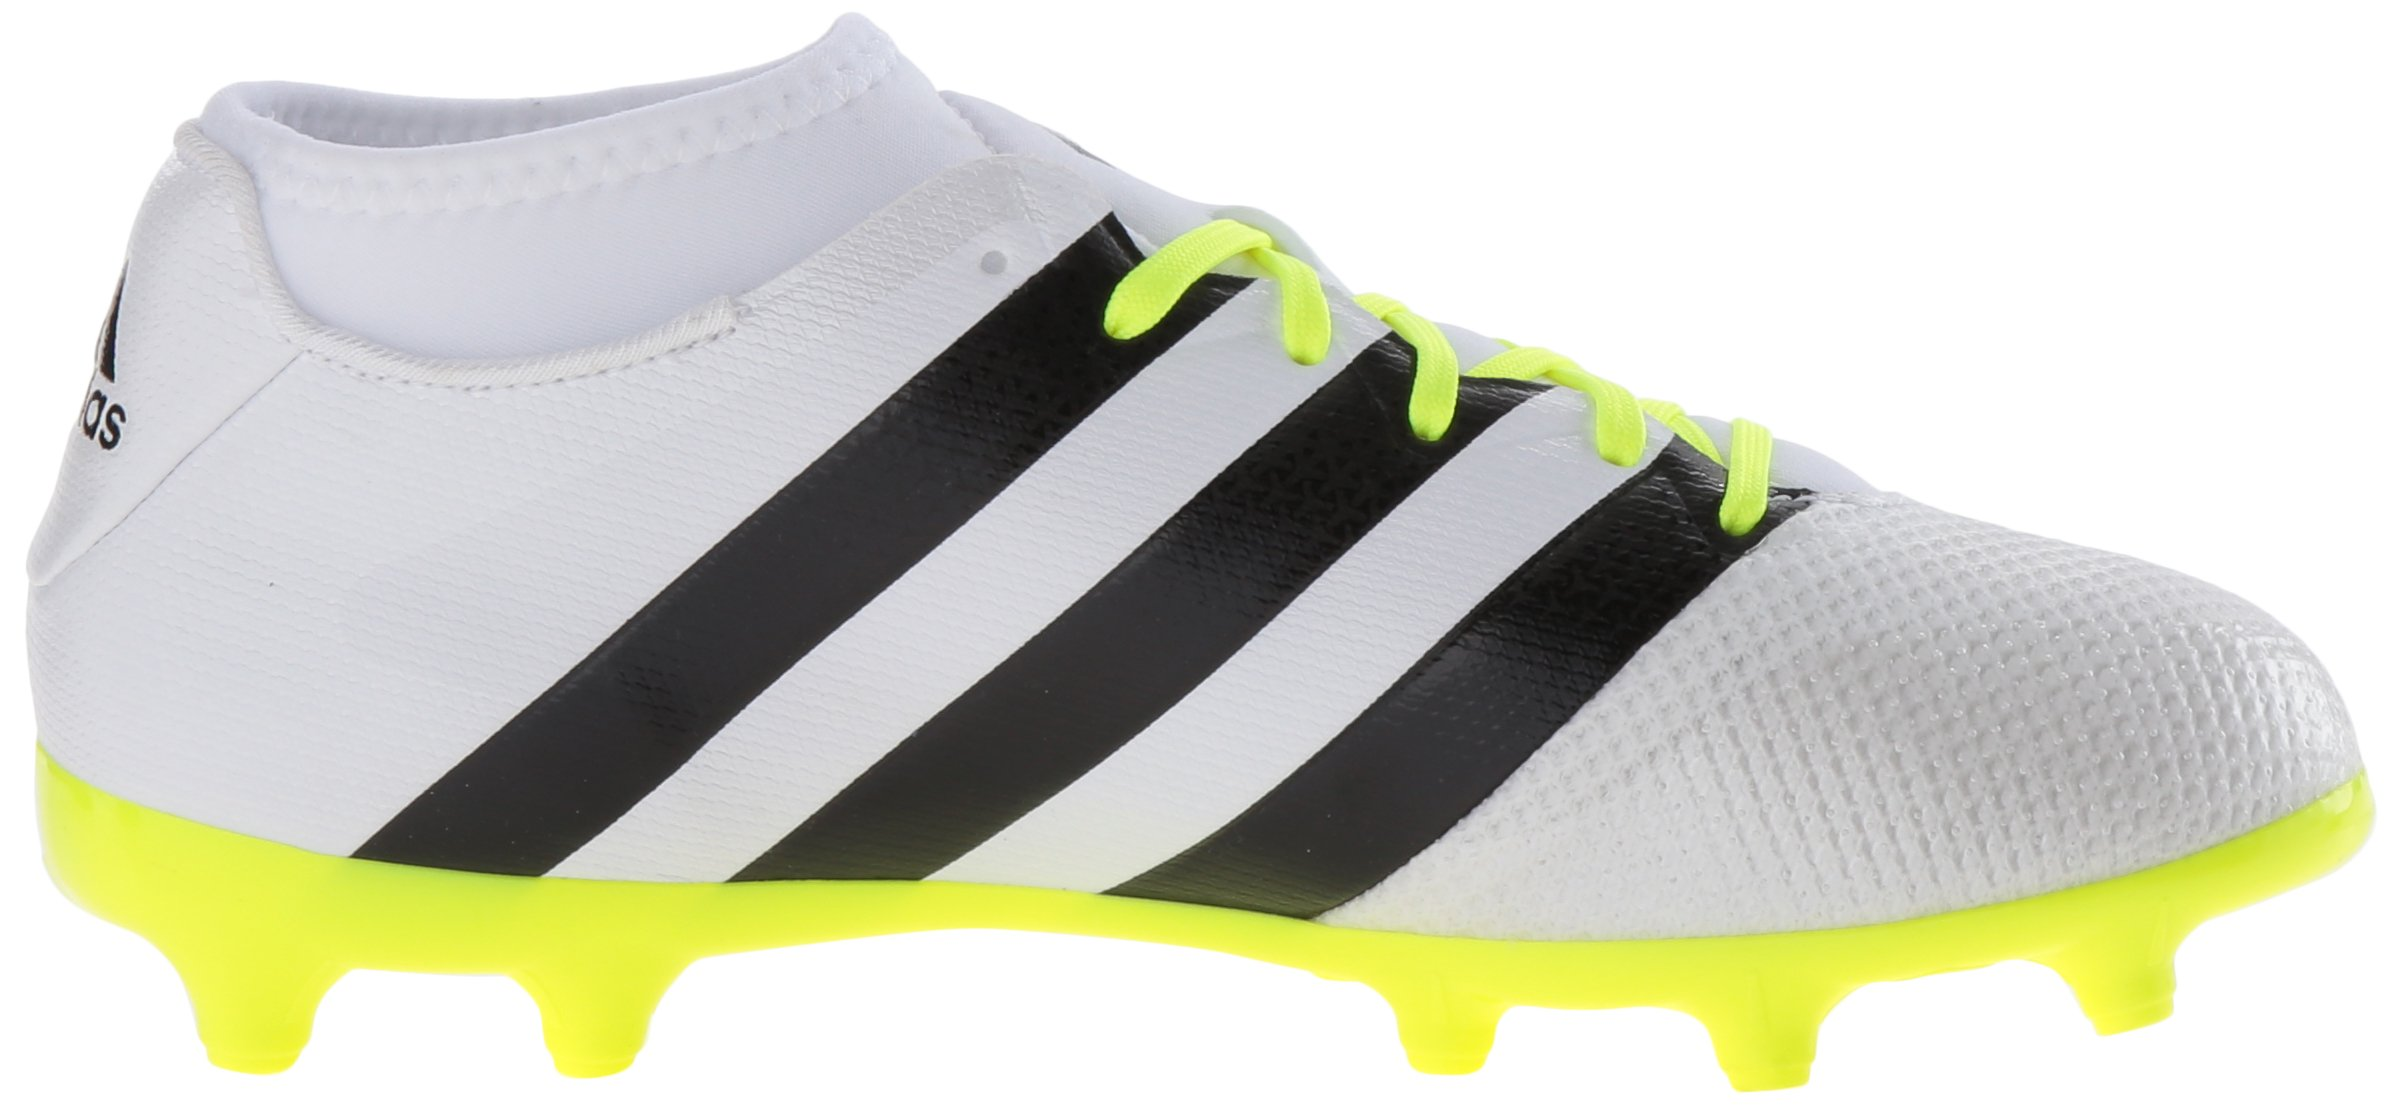 adidas Women's Ace 16.3 Primemesh FG/AG W Soccer Shoe, White/Black/Electricity, 9 M US by adidas (Image #7)